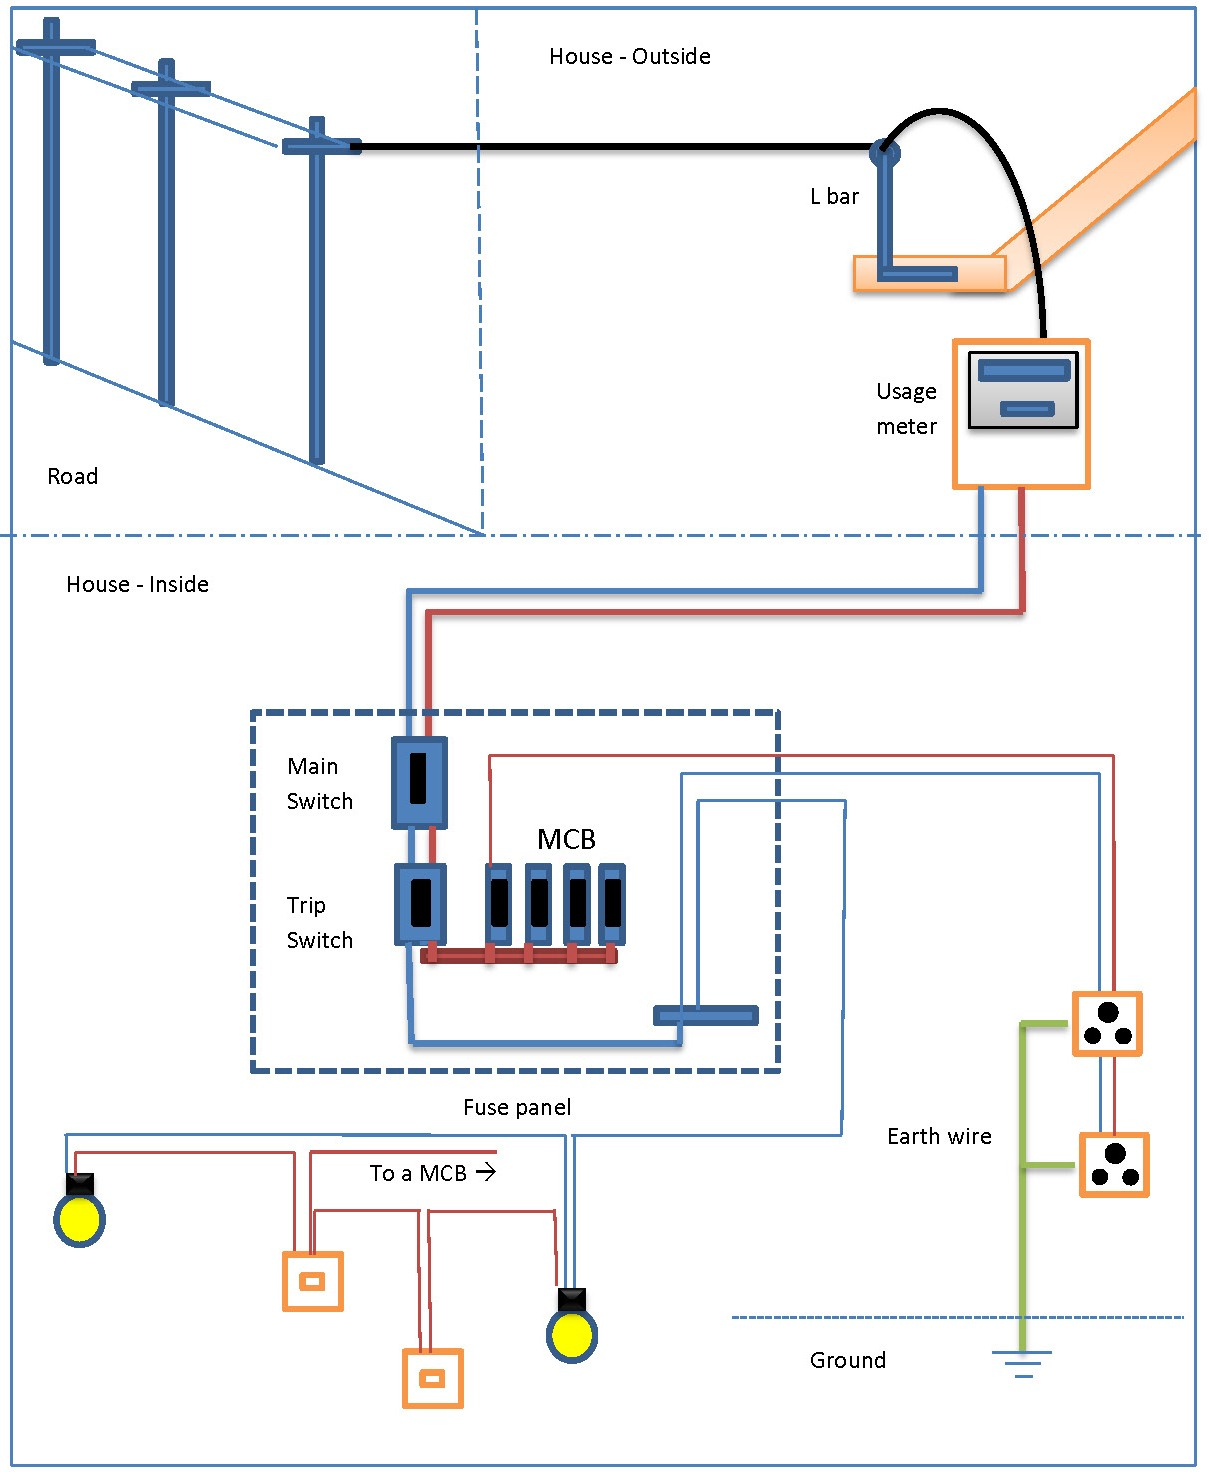 Doc3 senasum's blog house wiring diagram sri lanka house wiring diagrams at edmiracle.co